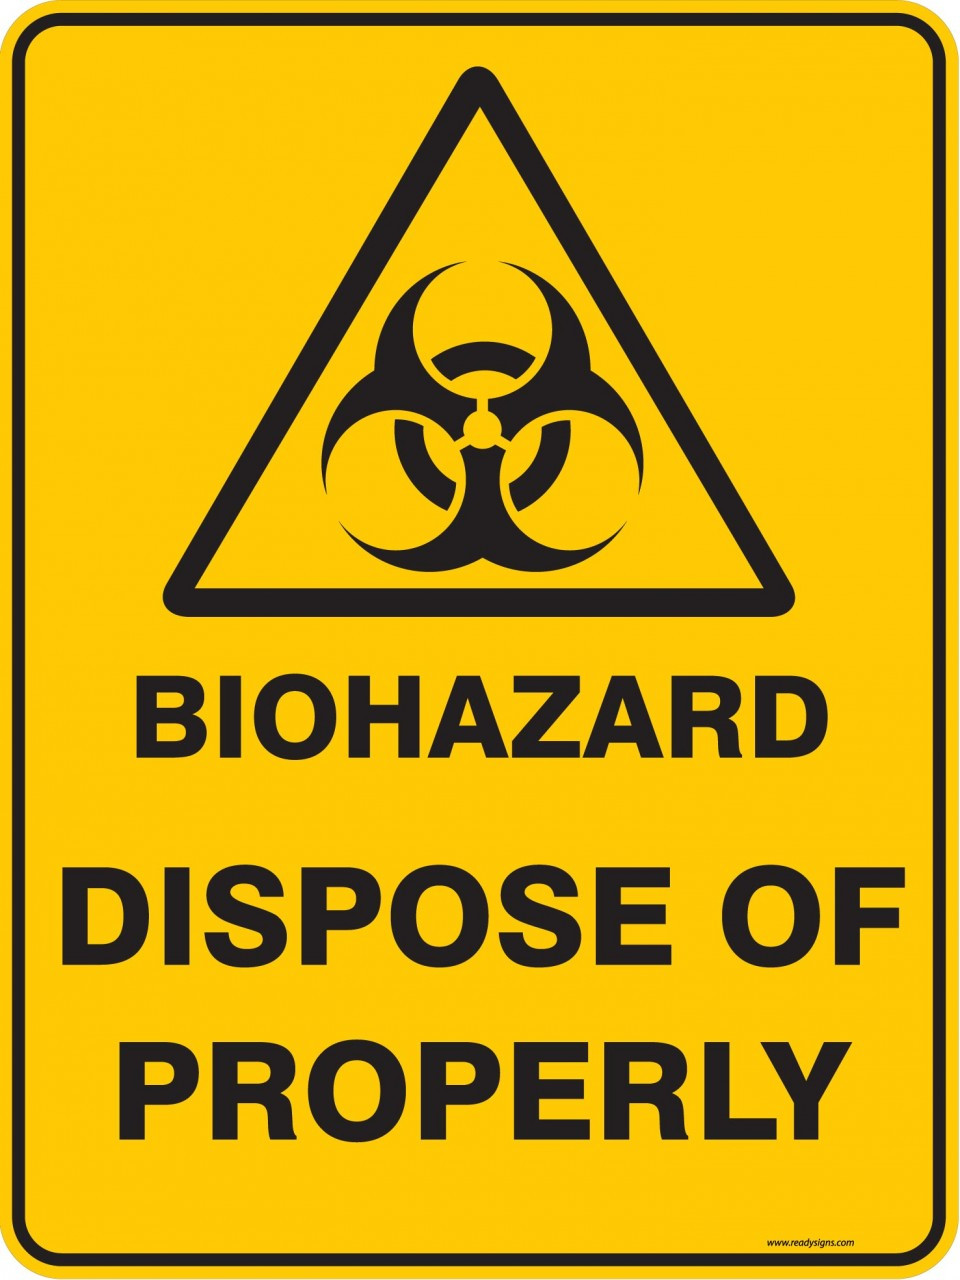 image relating to Biohazard Sign Printable identified as Biohazard Signal Printable -